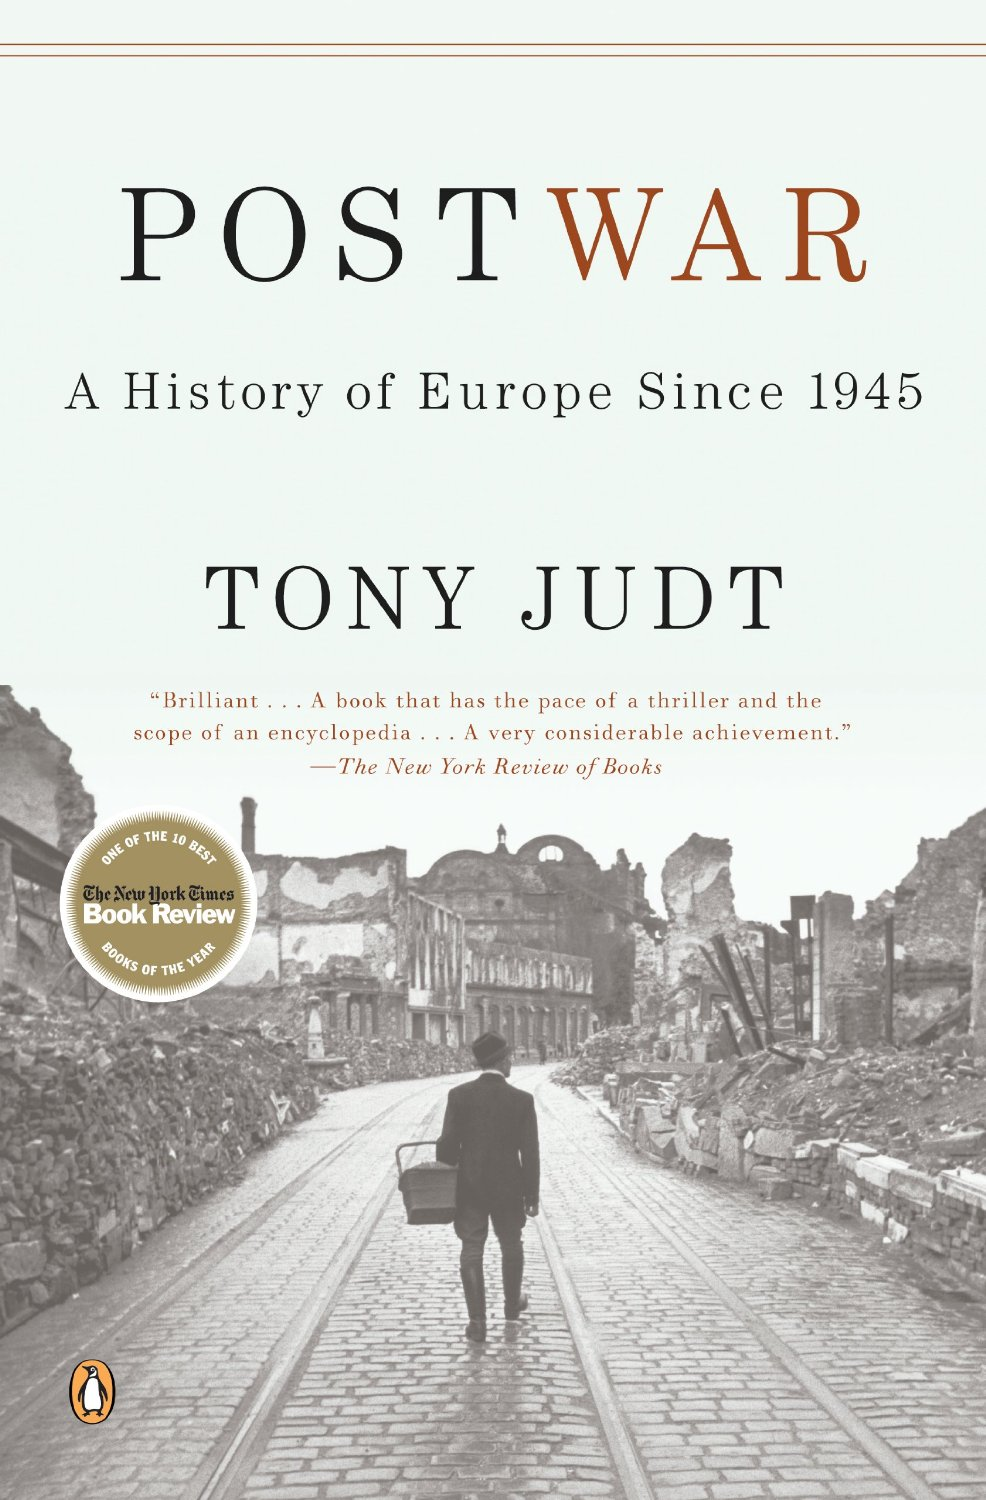 the history of the great war in europe History of europe: history of europe, history of european peoples and cultures from prehistoric times to the present  the great war and its aftermath.